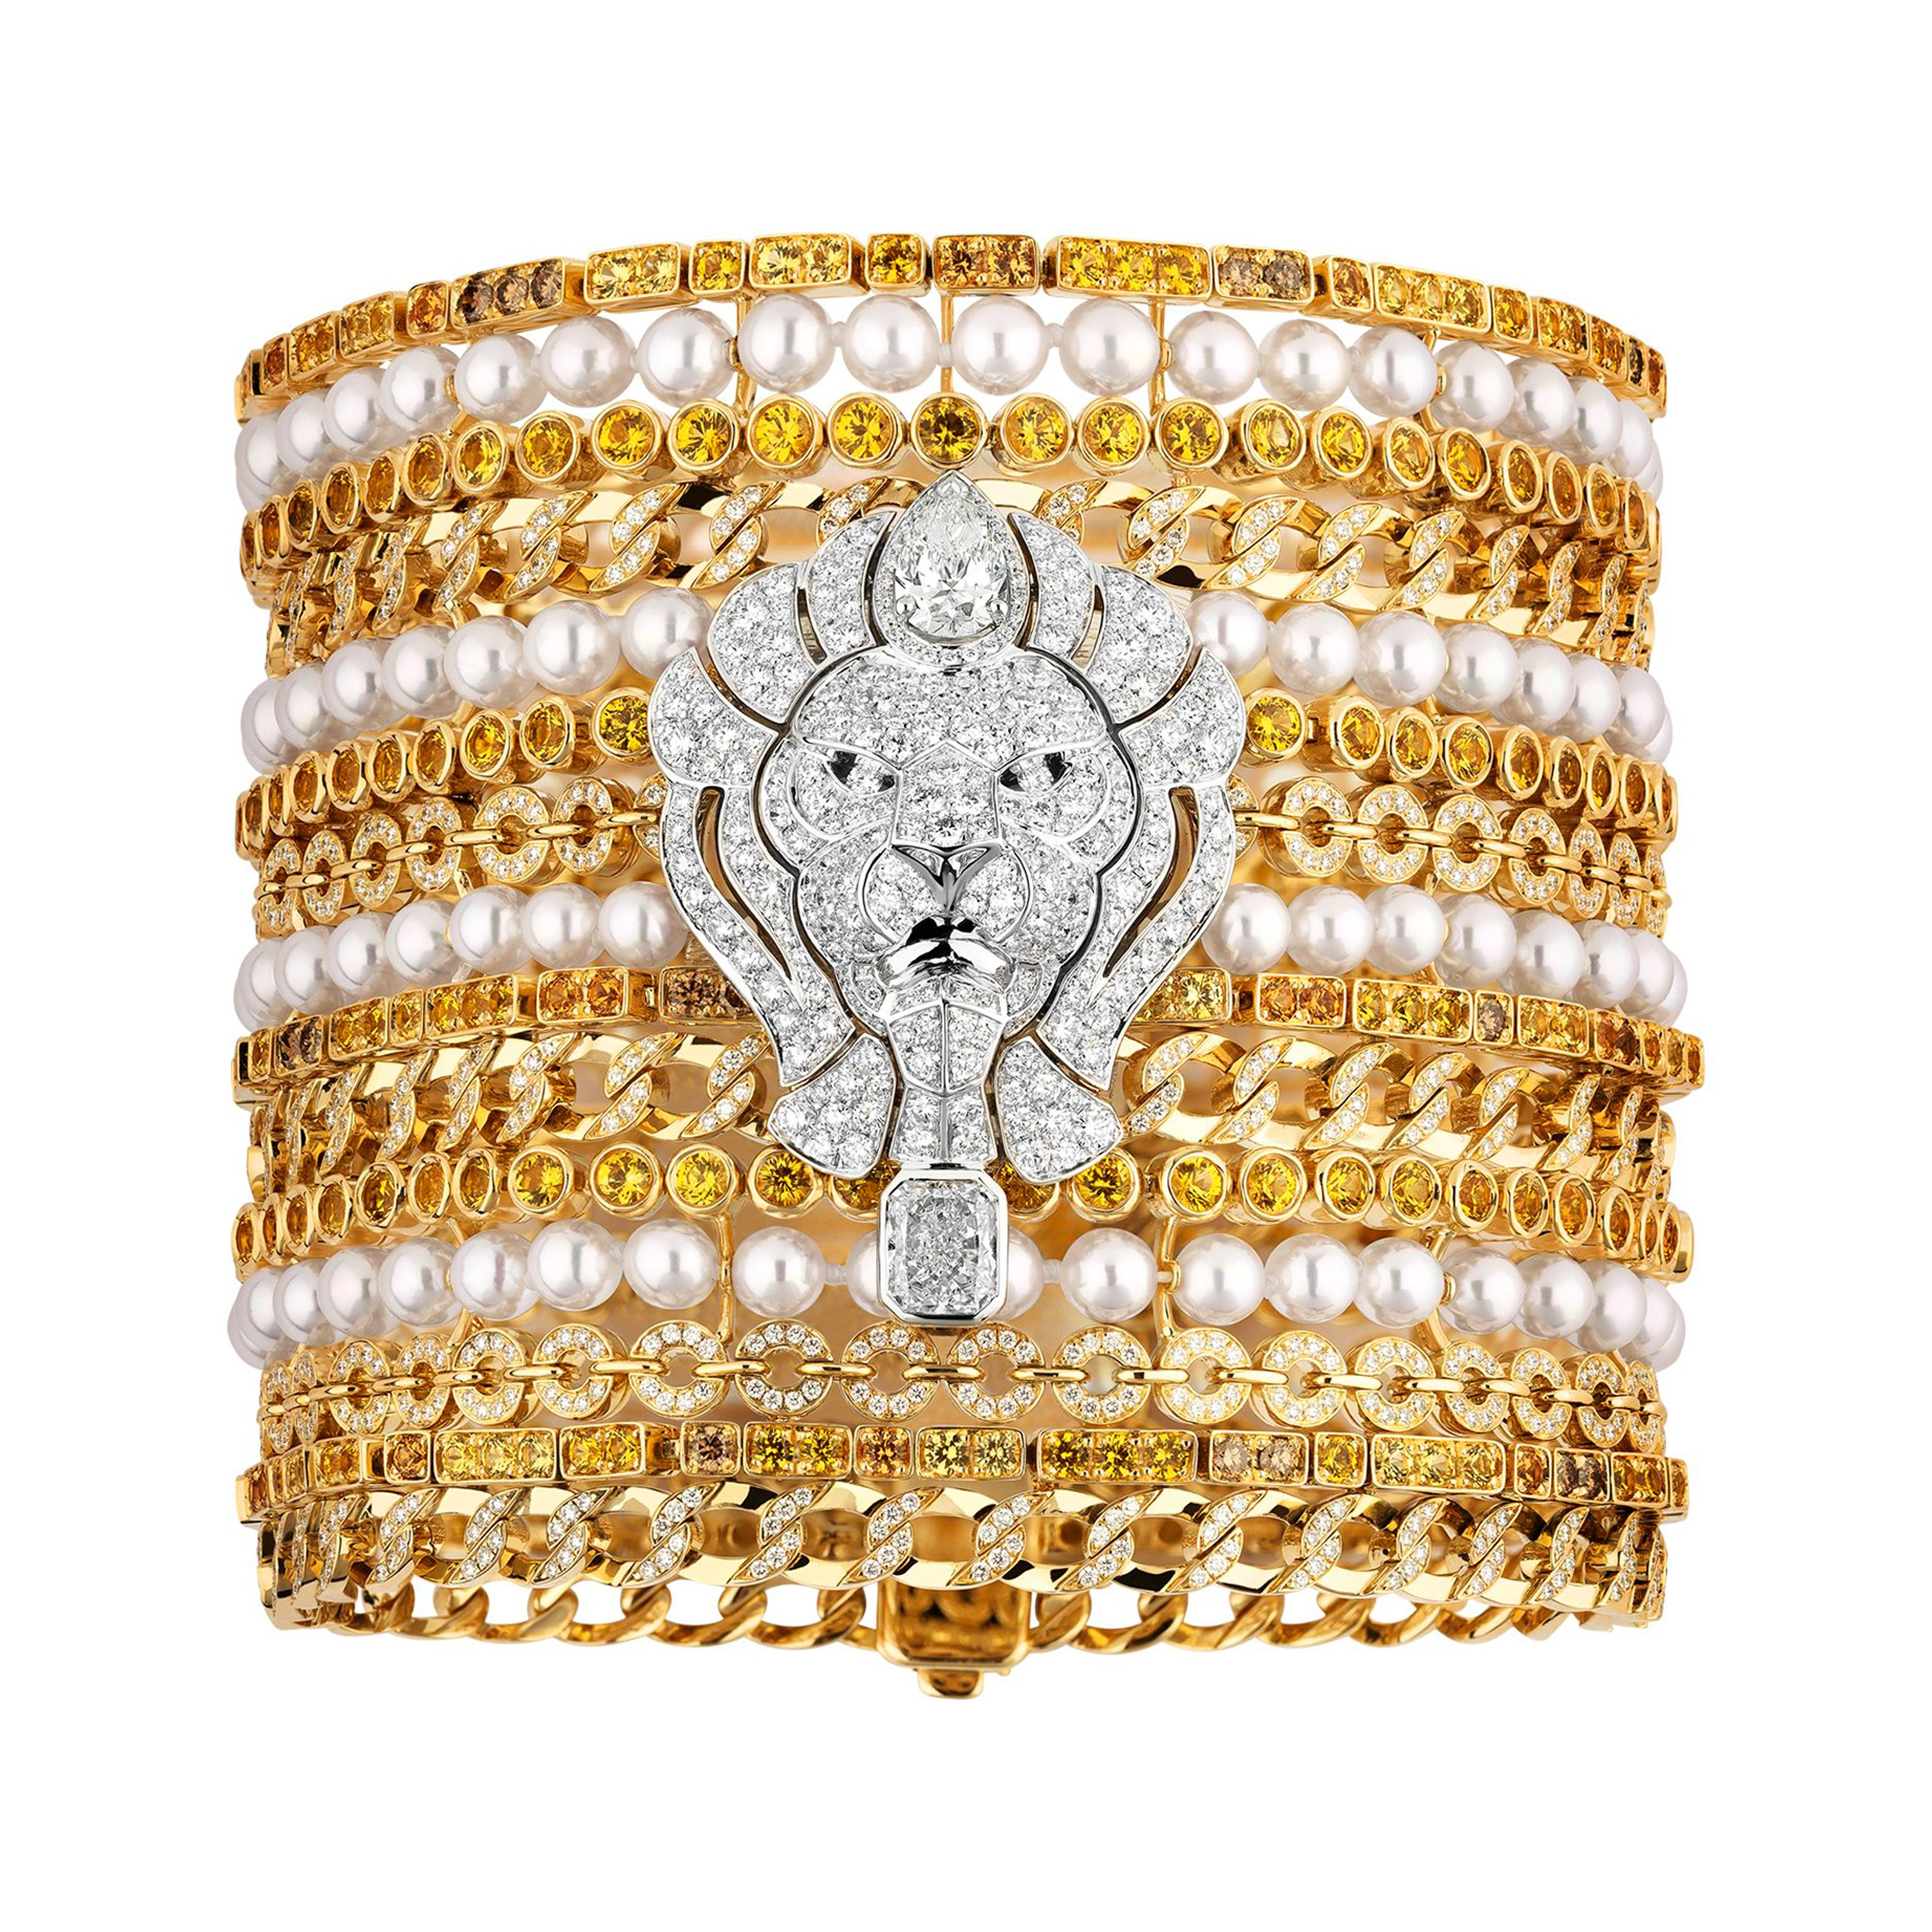 Chanel High Jewelry cuff in 18k white and yellow gold from the L'Esprit du Lion collection